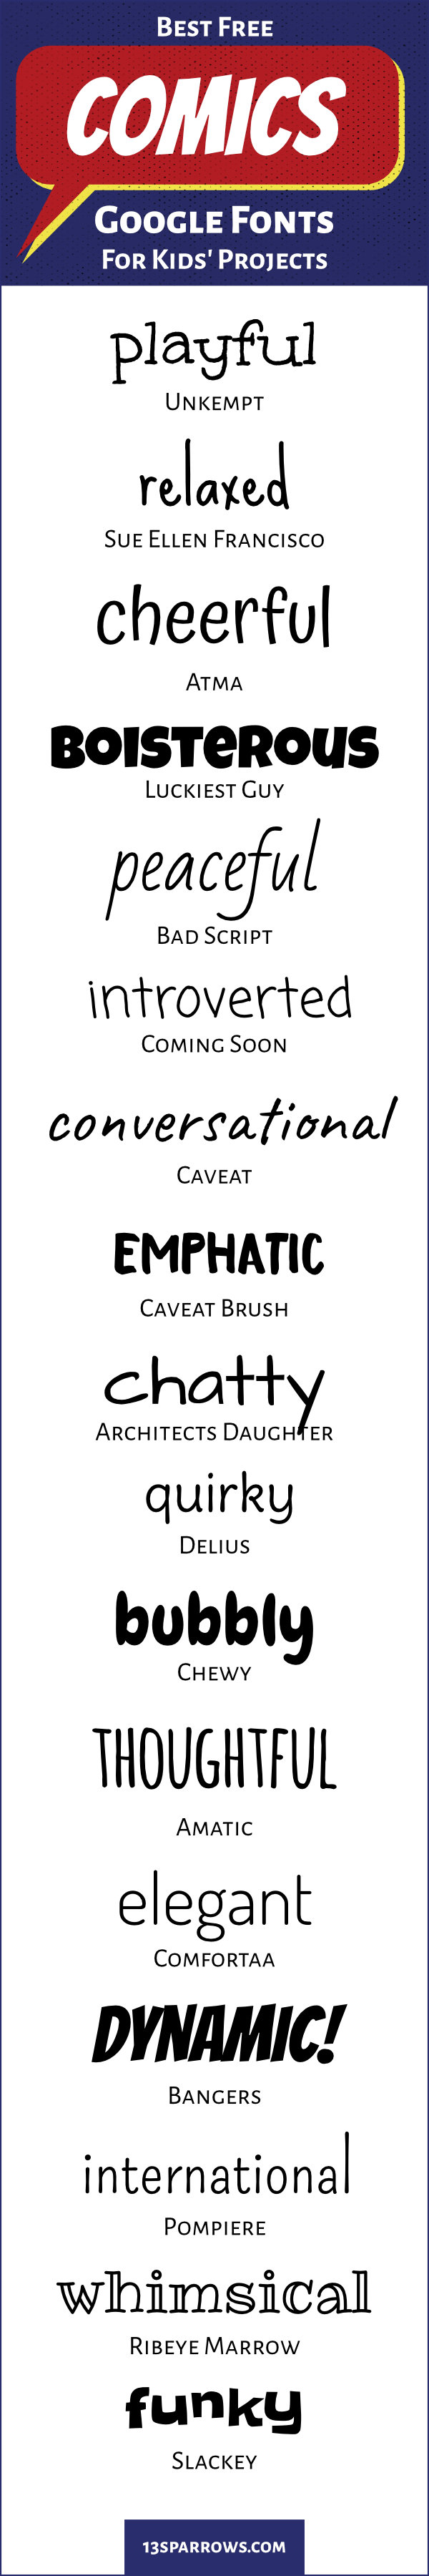 Use these fun, free, handwritten fonts for comics projects for kids. Download them on fonts.google.com.